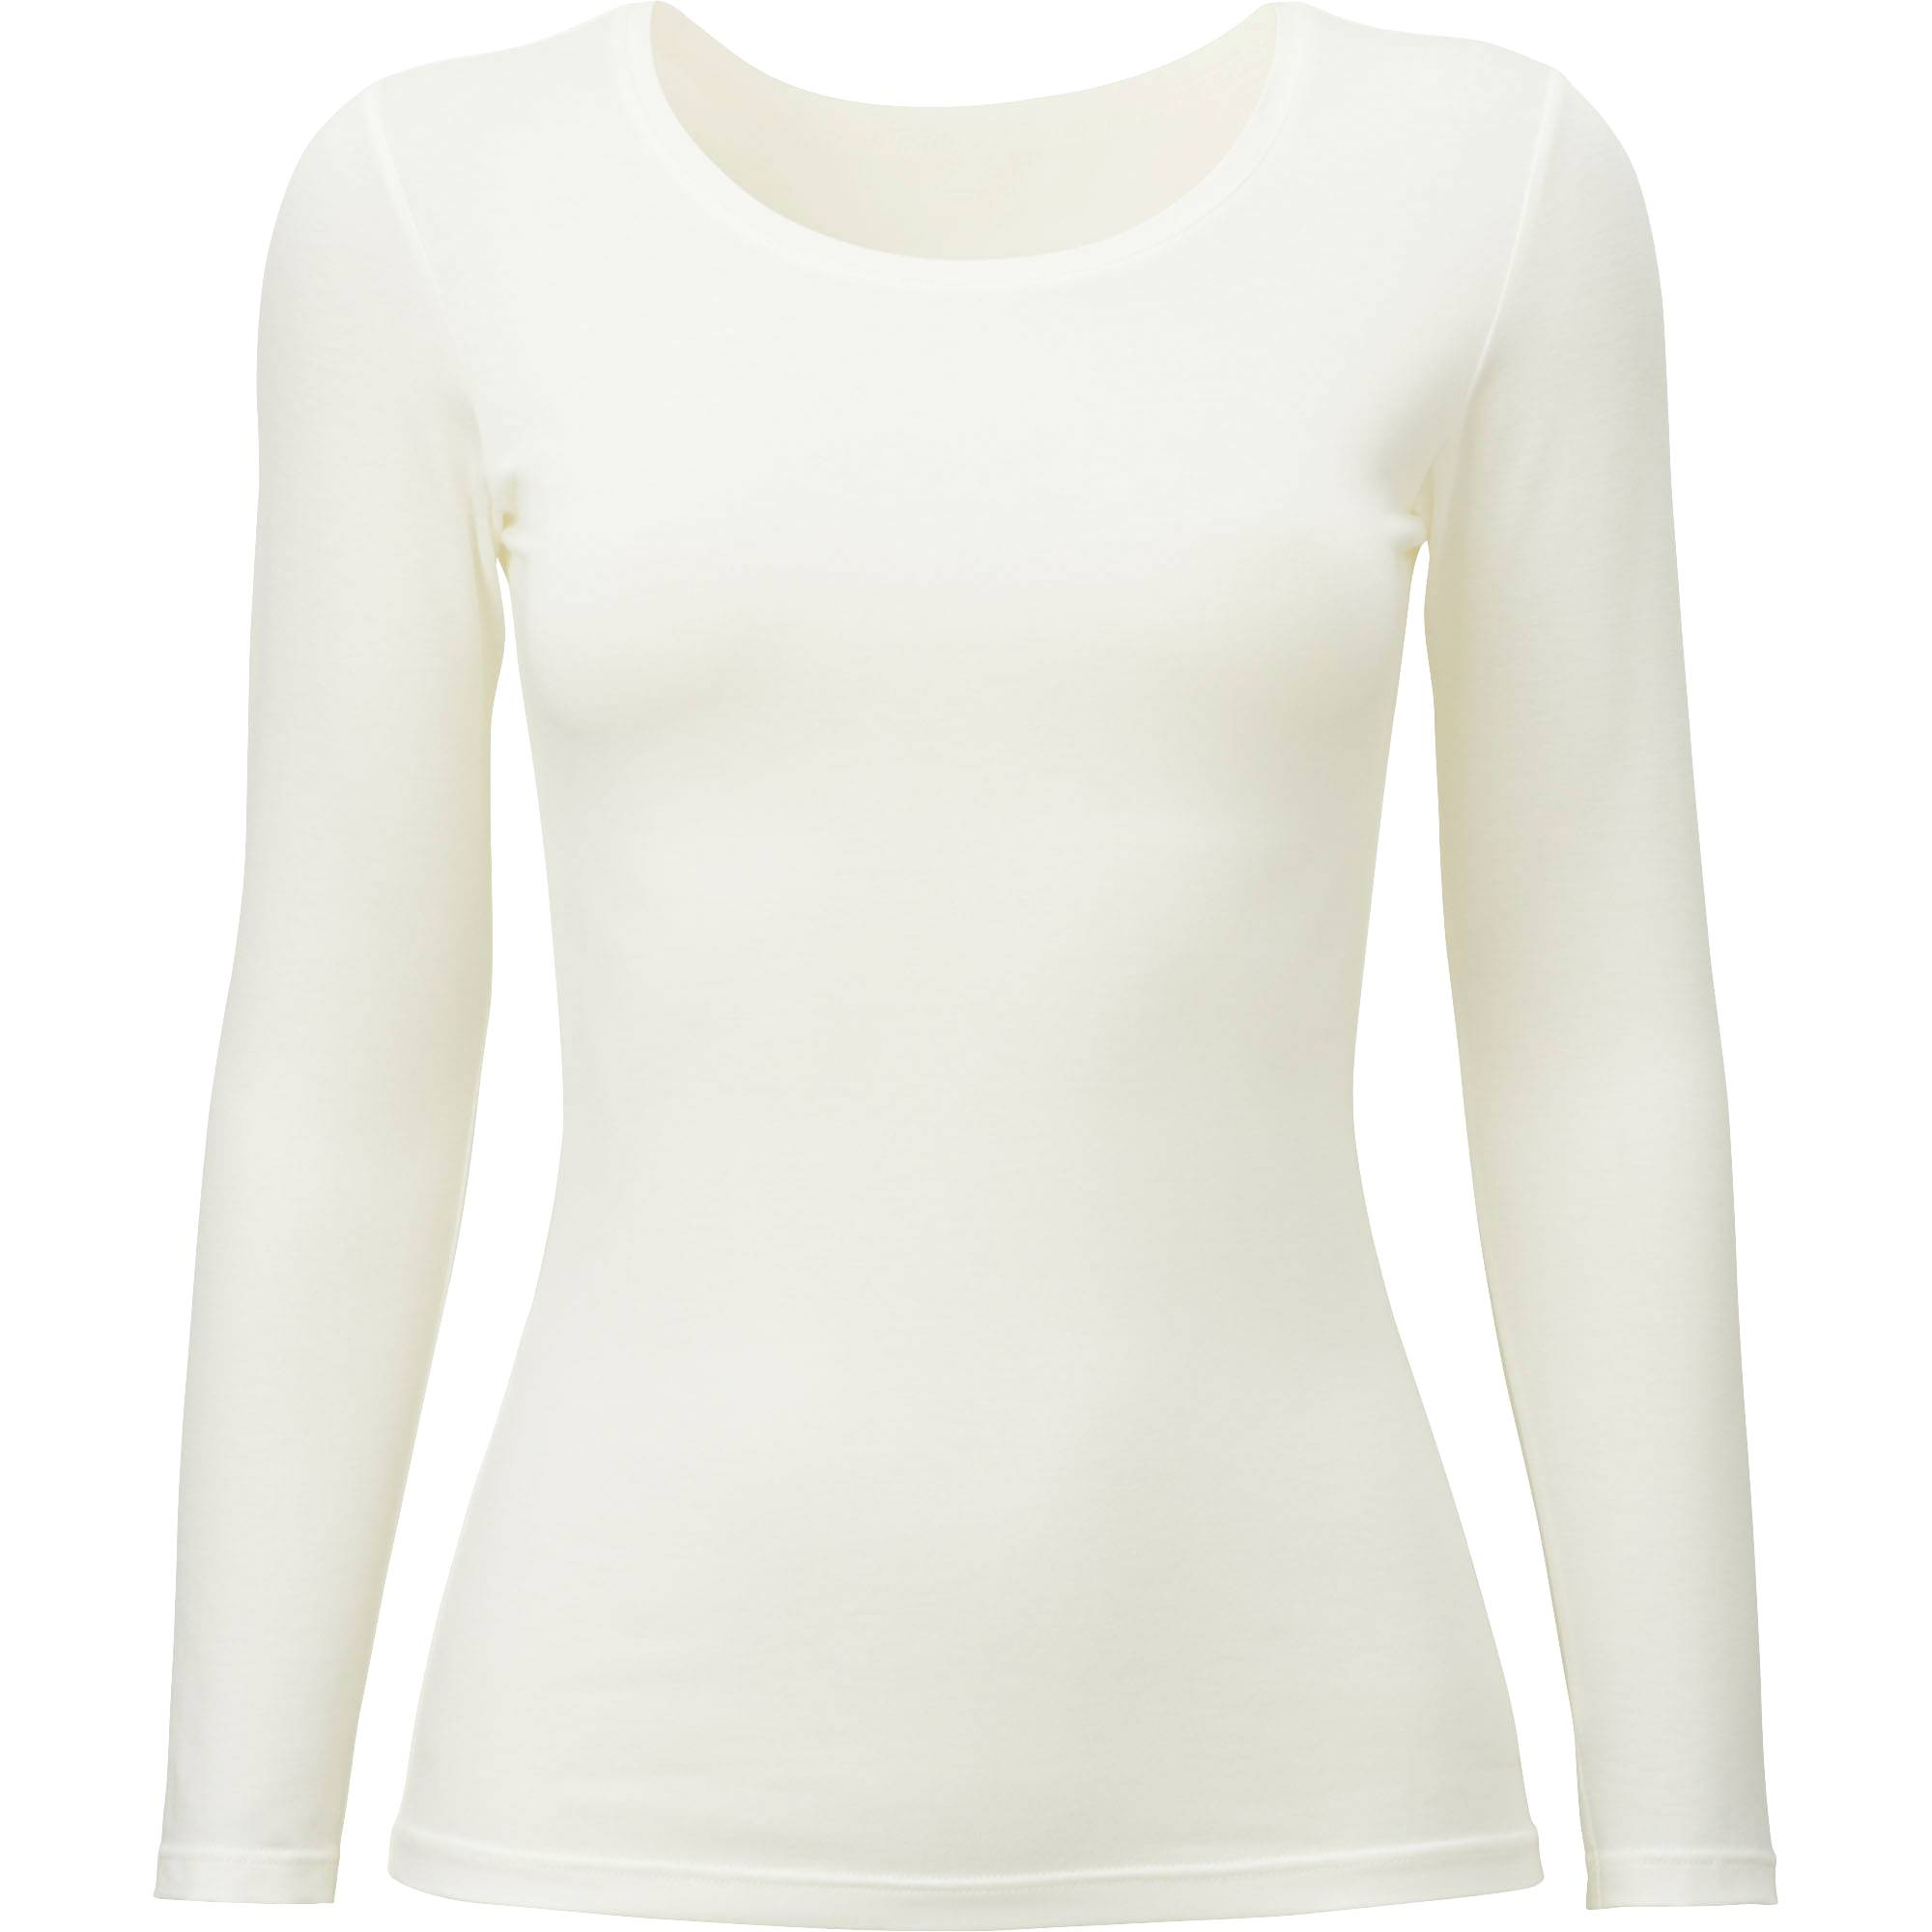 The most comfortable and best white button-down shirts for women in silk, cotton, oversize, fitted, and even one bodysuit.